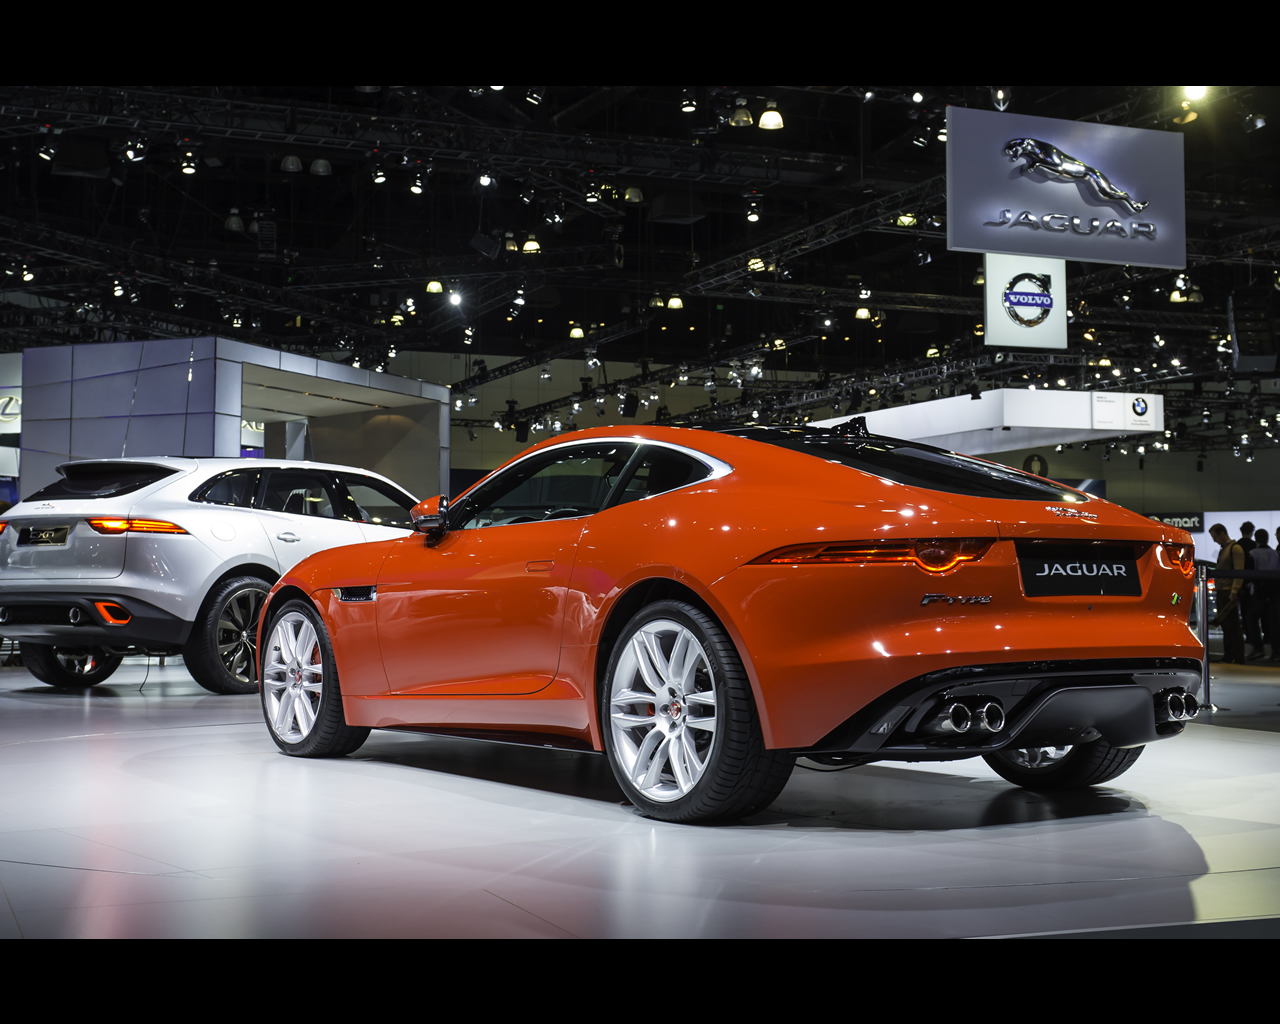 wallpapers jaguar f type coup 2014 click on image to enlarge. Cars Review. Best American Auto & Cars Review